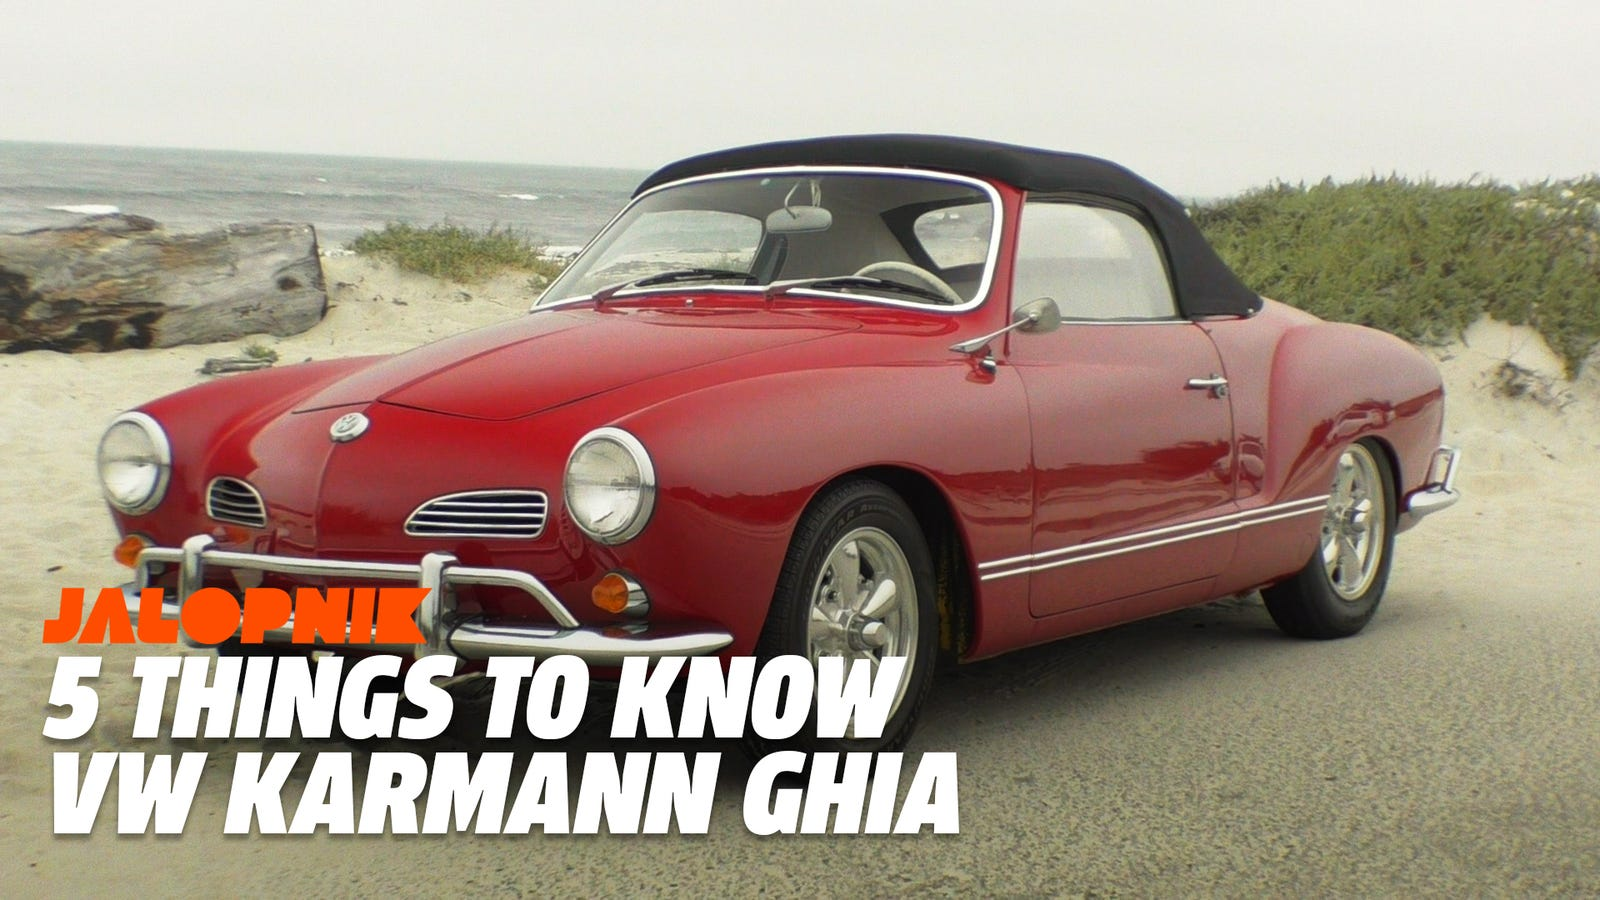 b9231ac8cb0c91 Five Things to Know About the Volkswagen Karmann-Ghia, And Its Sort-Of  Stolen Design